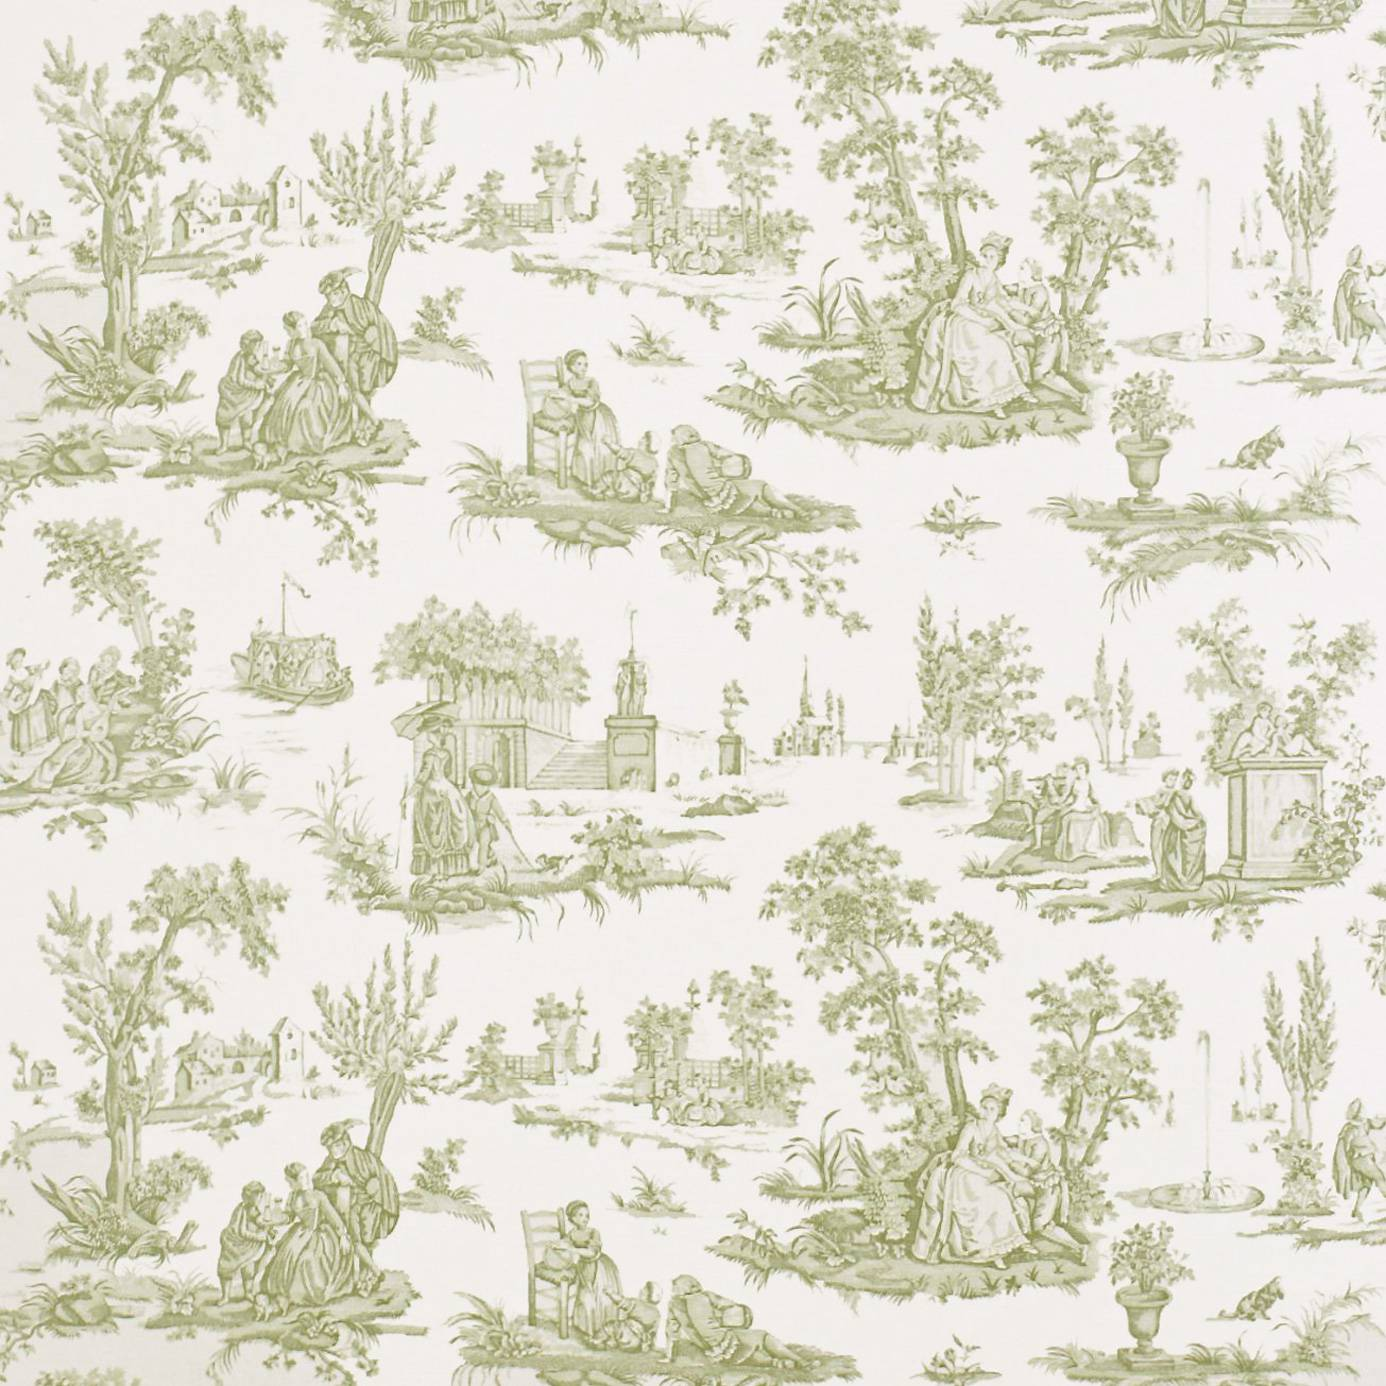 Cape Cod Toile Fabrics Wallpaper Custom Carpets Plllows Joan